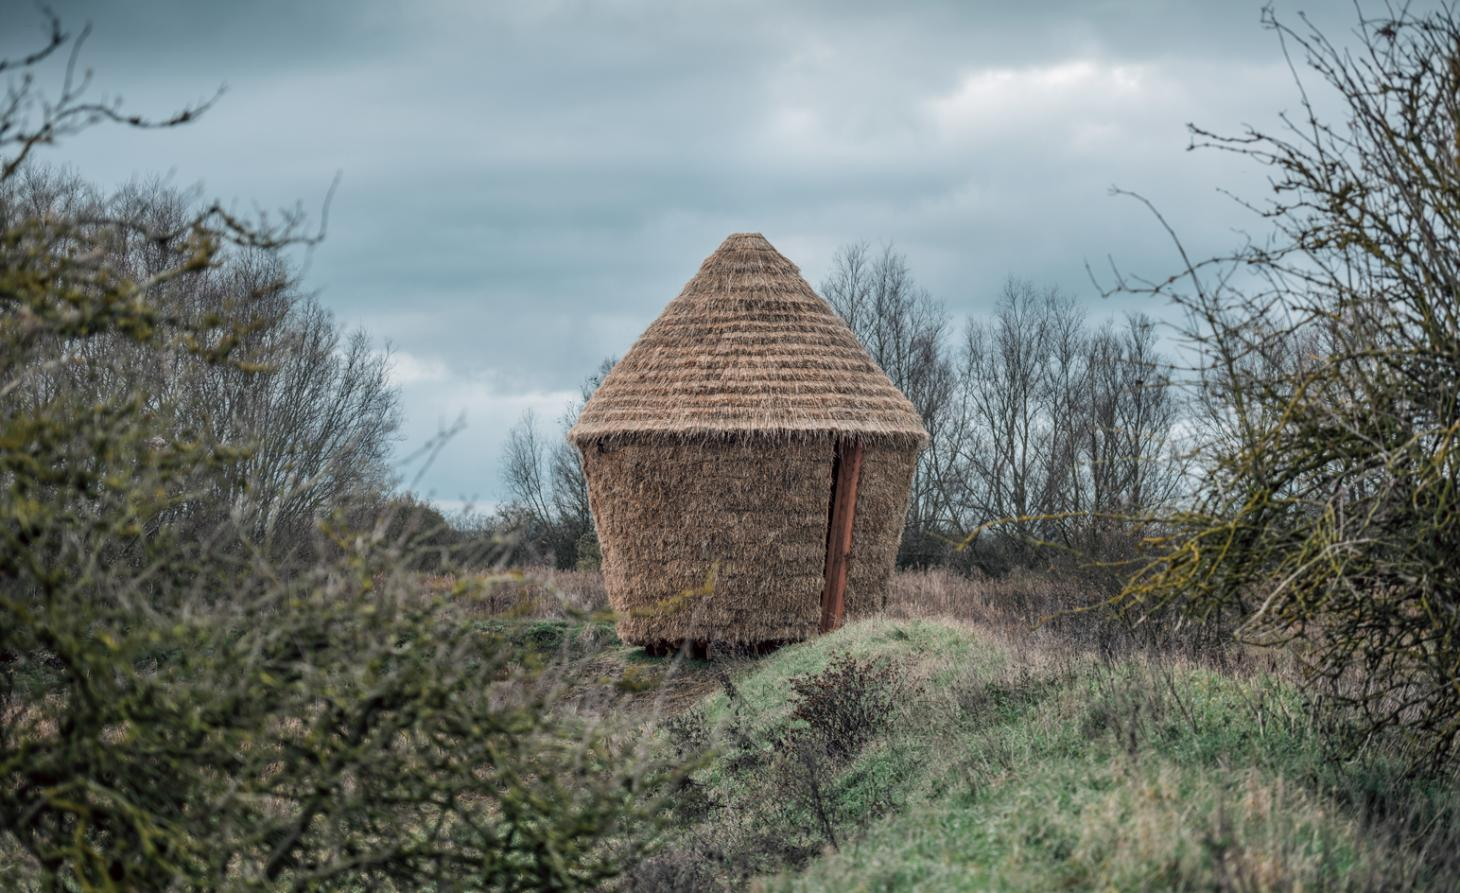 Studio Morison builds a 'spiritual' sanctuary out of straw in Cambridgeshire